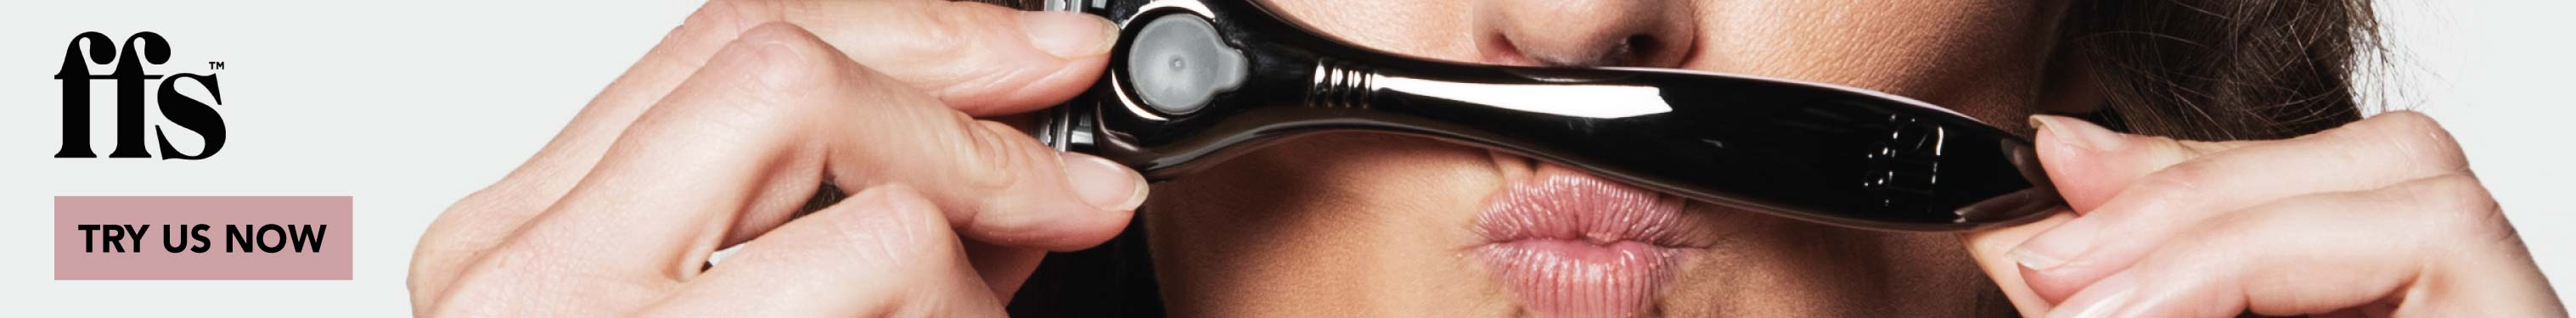 the best shaving and beauty products